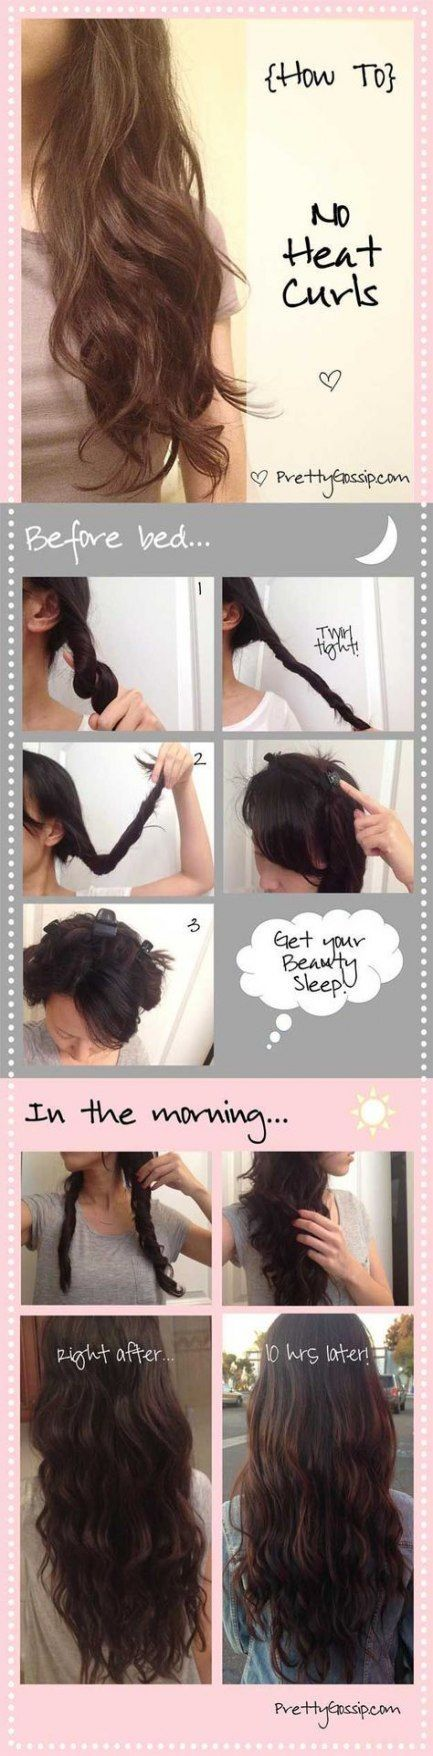 Hairstyles wavy medium hair tutorials beachy waves 63 Ideas